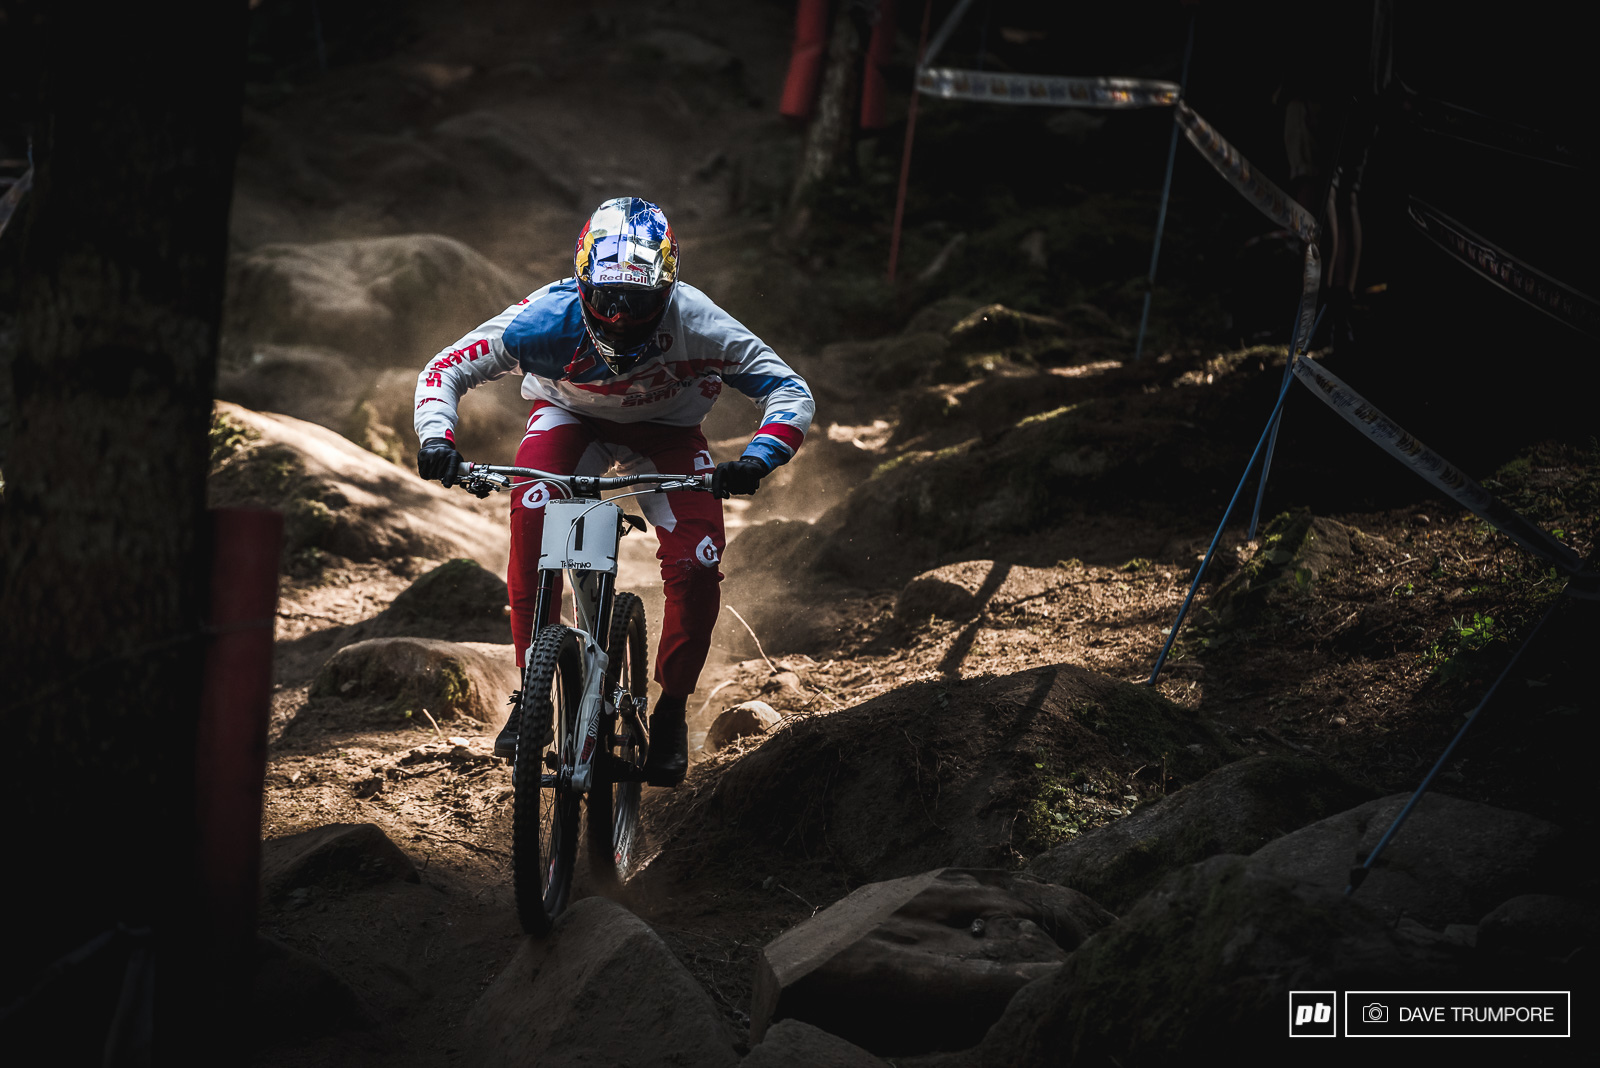 Loic put down a few fast laps today and is looking like he has every intention of defending his title here in Italy.